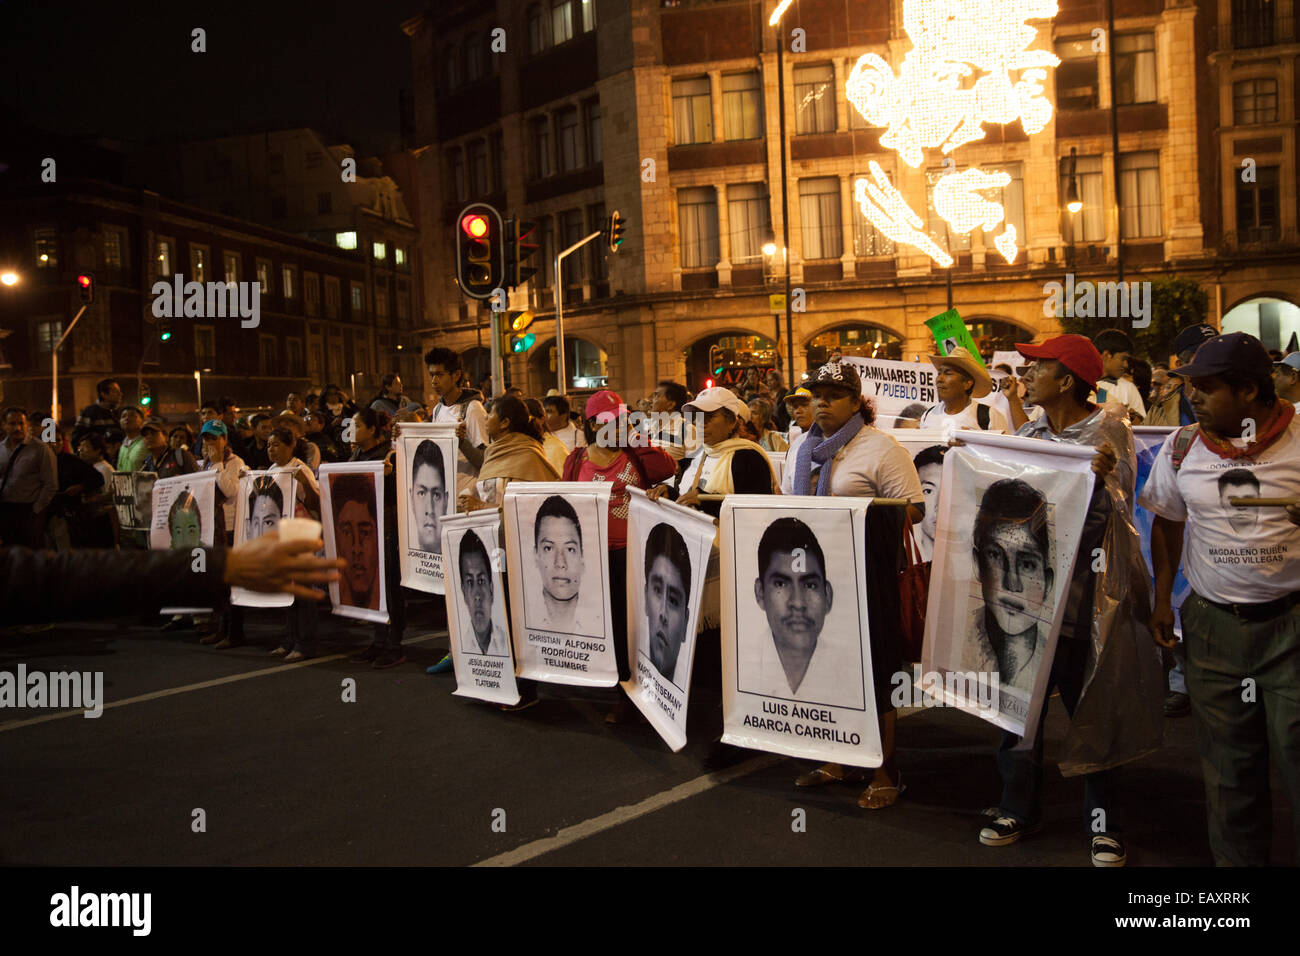 Parents and relatives of the 43 missing students from Ayotzinapa's teacher training college, hold images of the - Stock Image